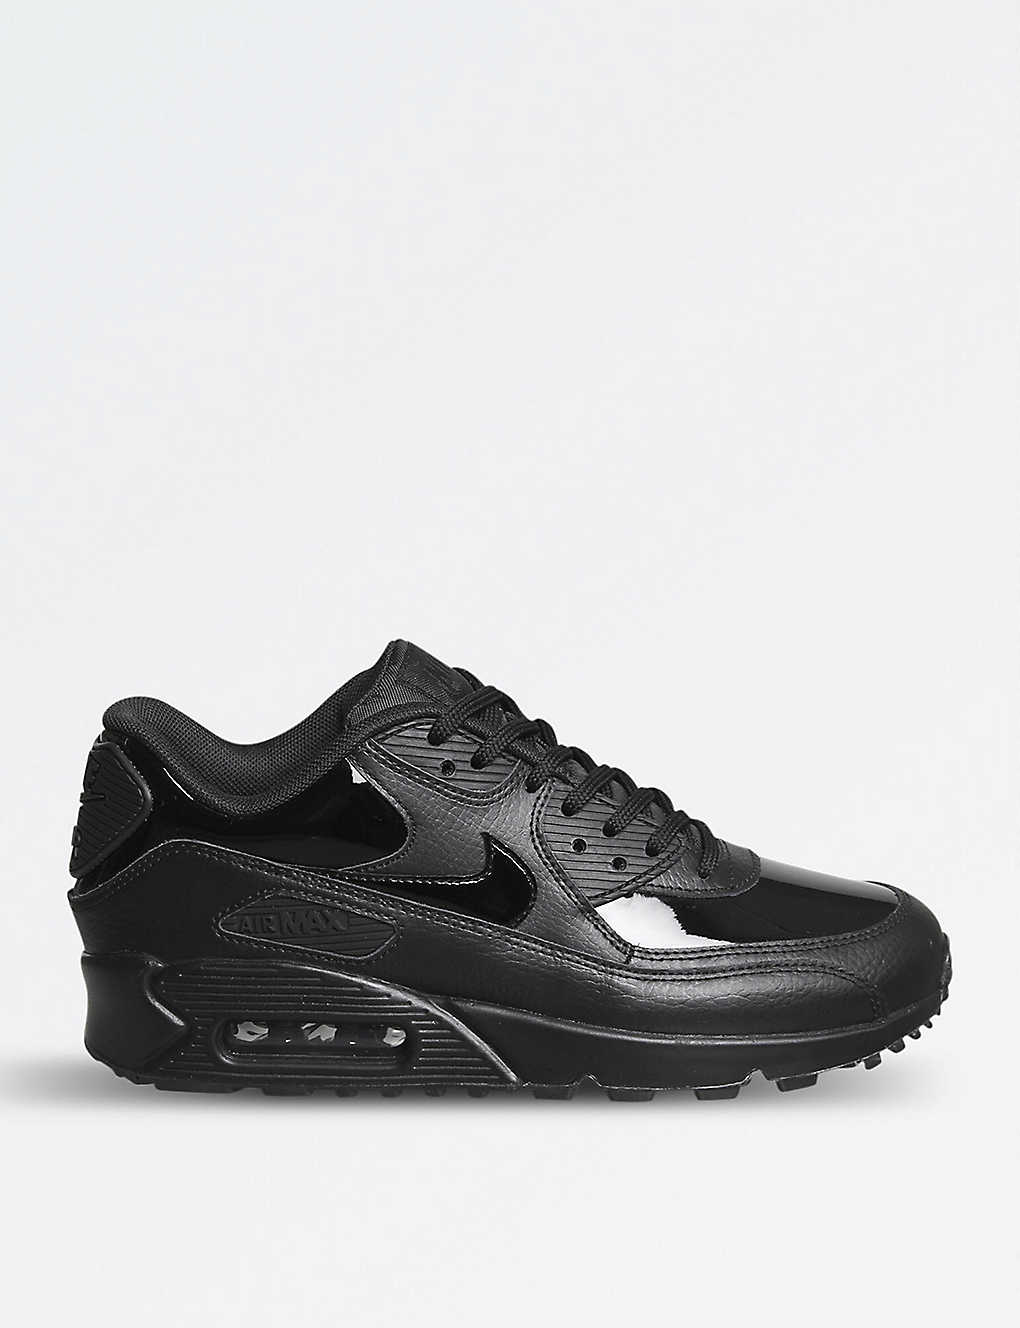 size 40 a0175 6d5f4 ... Air Max 90 patent leather trainers zoom ...